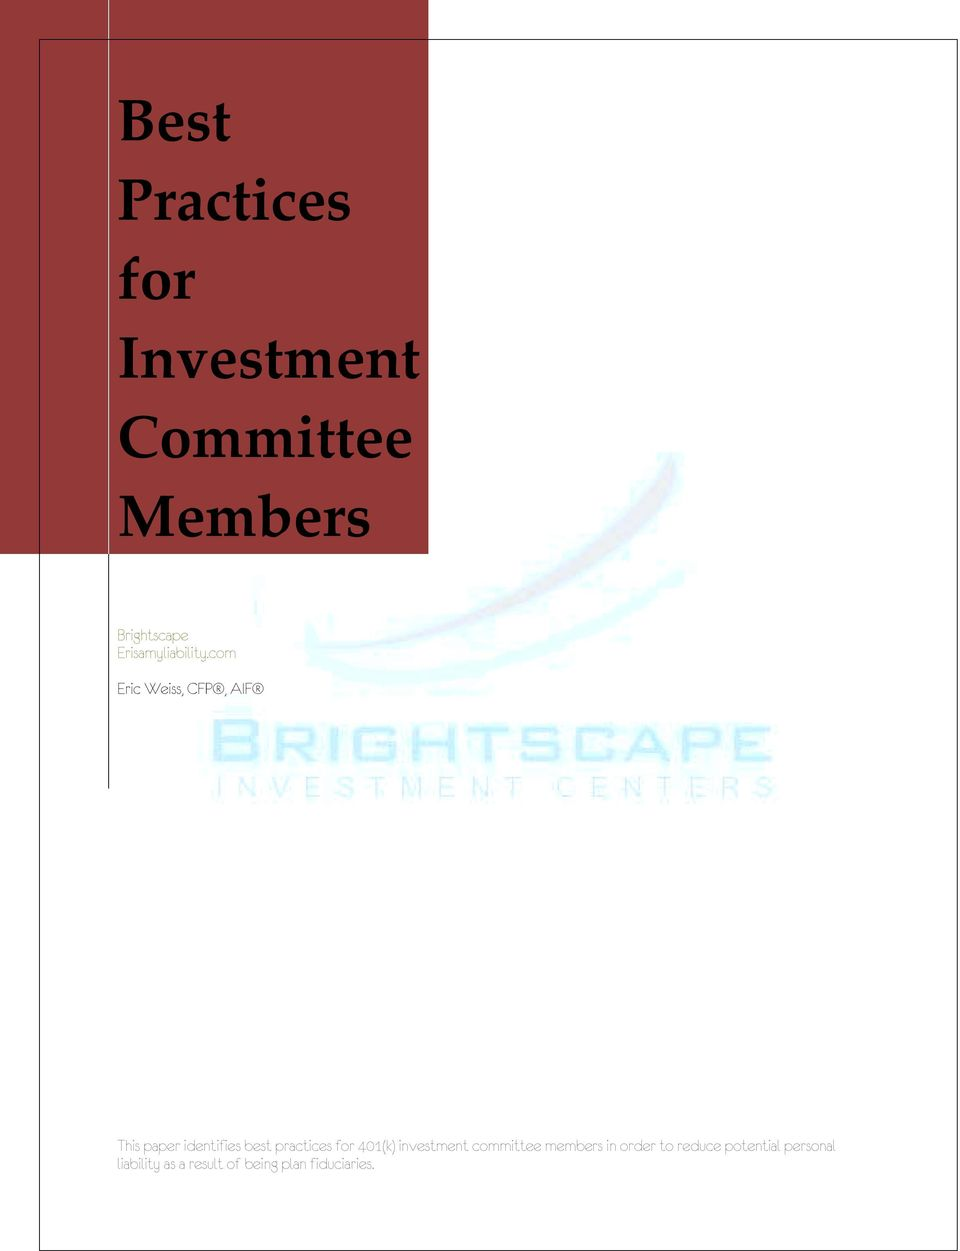 com Eric Weiss, CFP, AIF This paper identifies best practices for